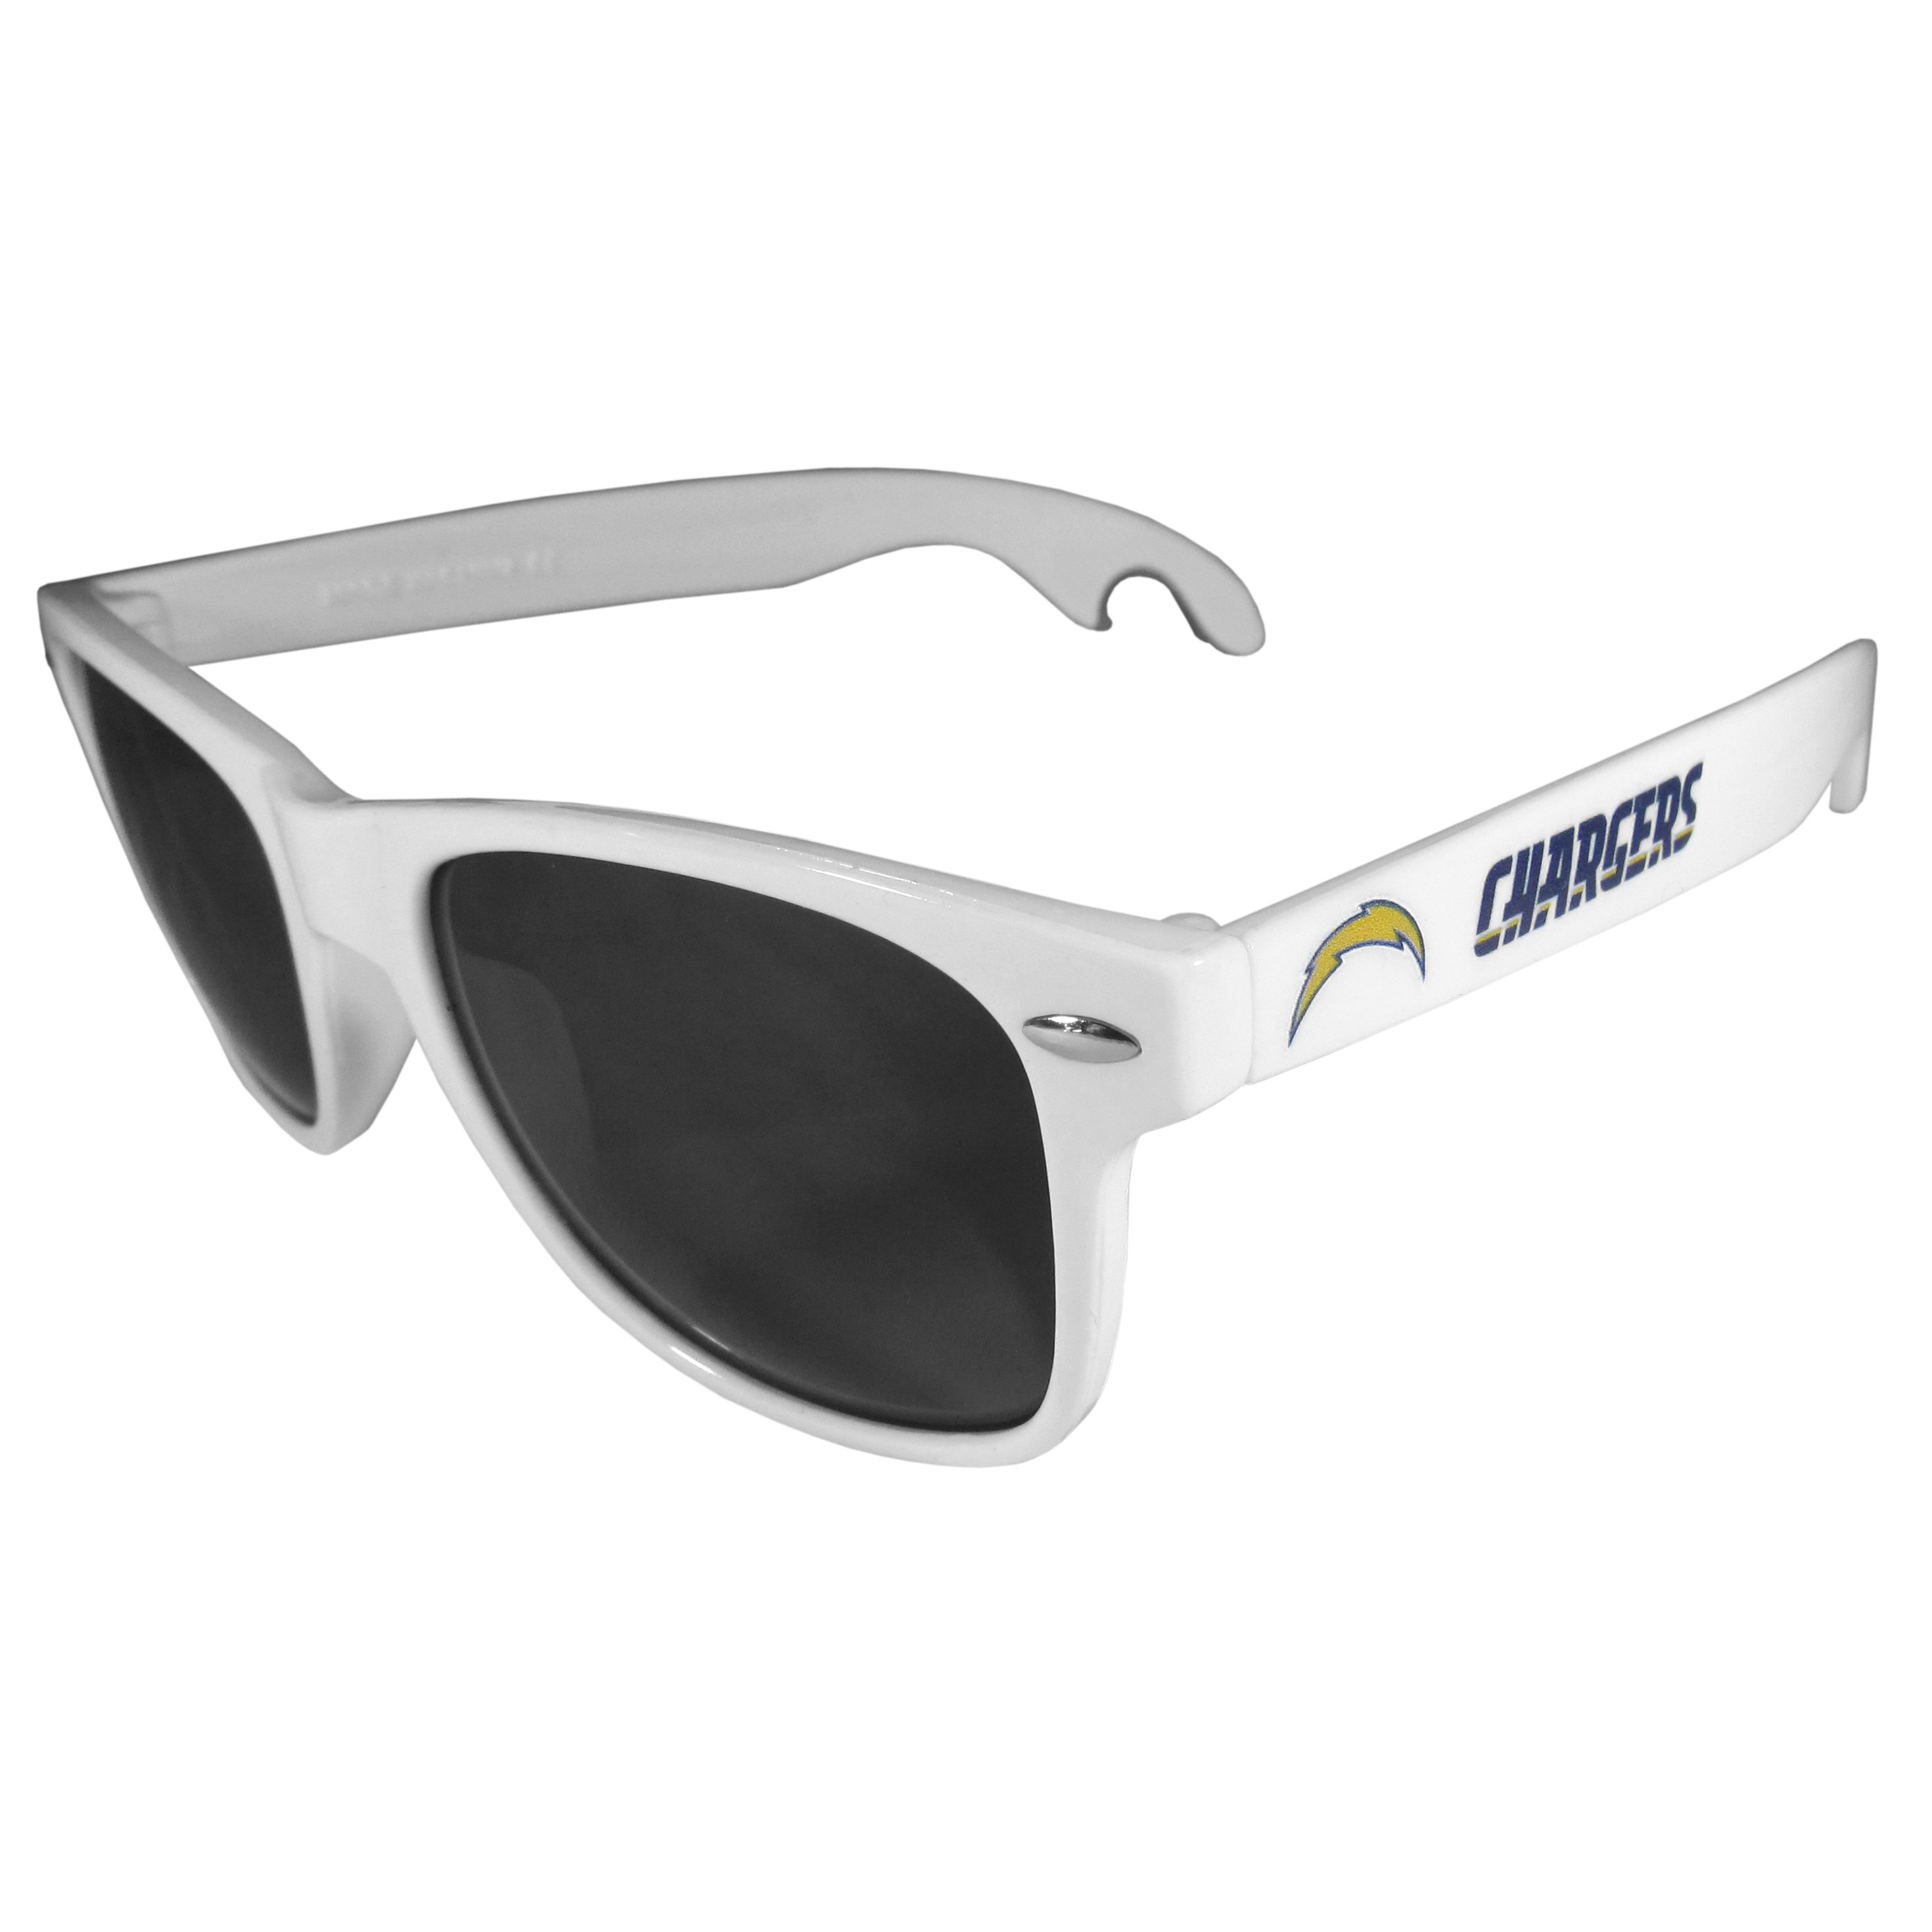 Los Angeles Chargers Beachfarer Bottle Opener Sunglasses, White - Seriously, these sunglasses open bottles! Keep the party going with these amazing Los Angeles Chargers bottle opener sunglasses. The stylish retro frames feature team designs on the arms and functional bottle openers on the end of the arms. Whether you are at the beach or having a backyard BBQ on game day, these shades will keep your eyes protected with 100% UVA/UVB protection and keep you hydrated with the handy bottle opener arms.